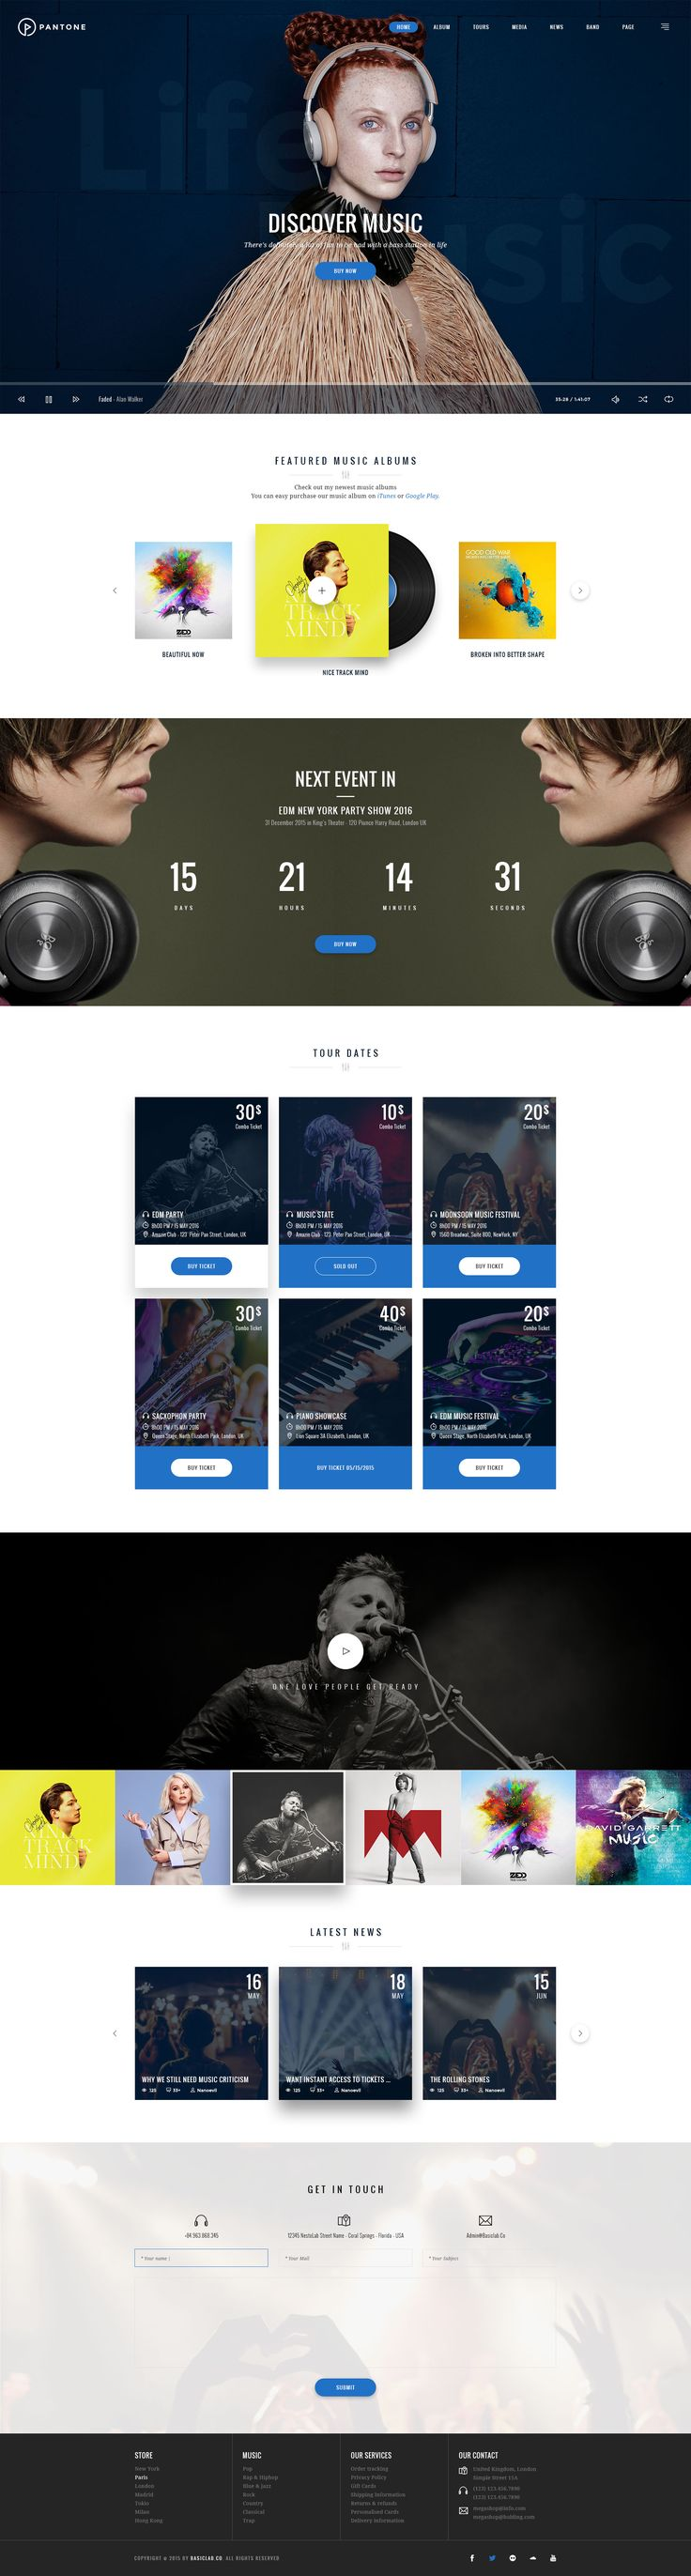 Pantone - Music & Band PSD Template #web design #unique #club • Download ➝ https://themeforest.net/item/pantone-music-band-psd-template/16148969?ref=pxcr